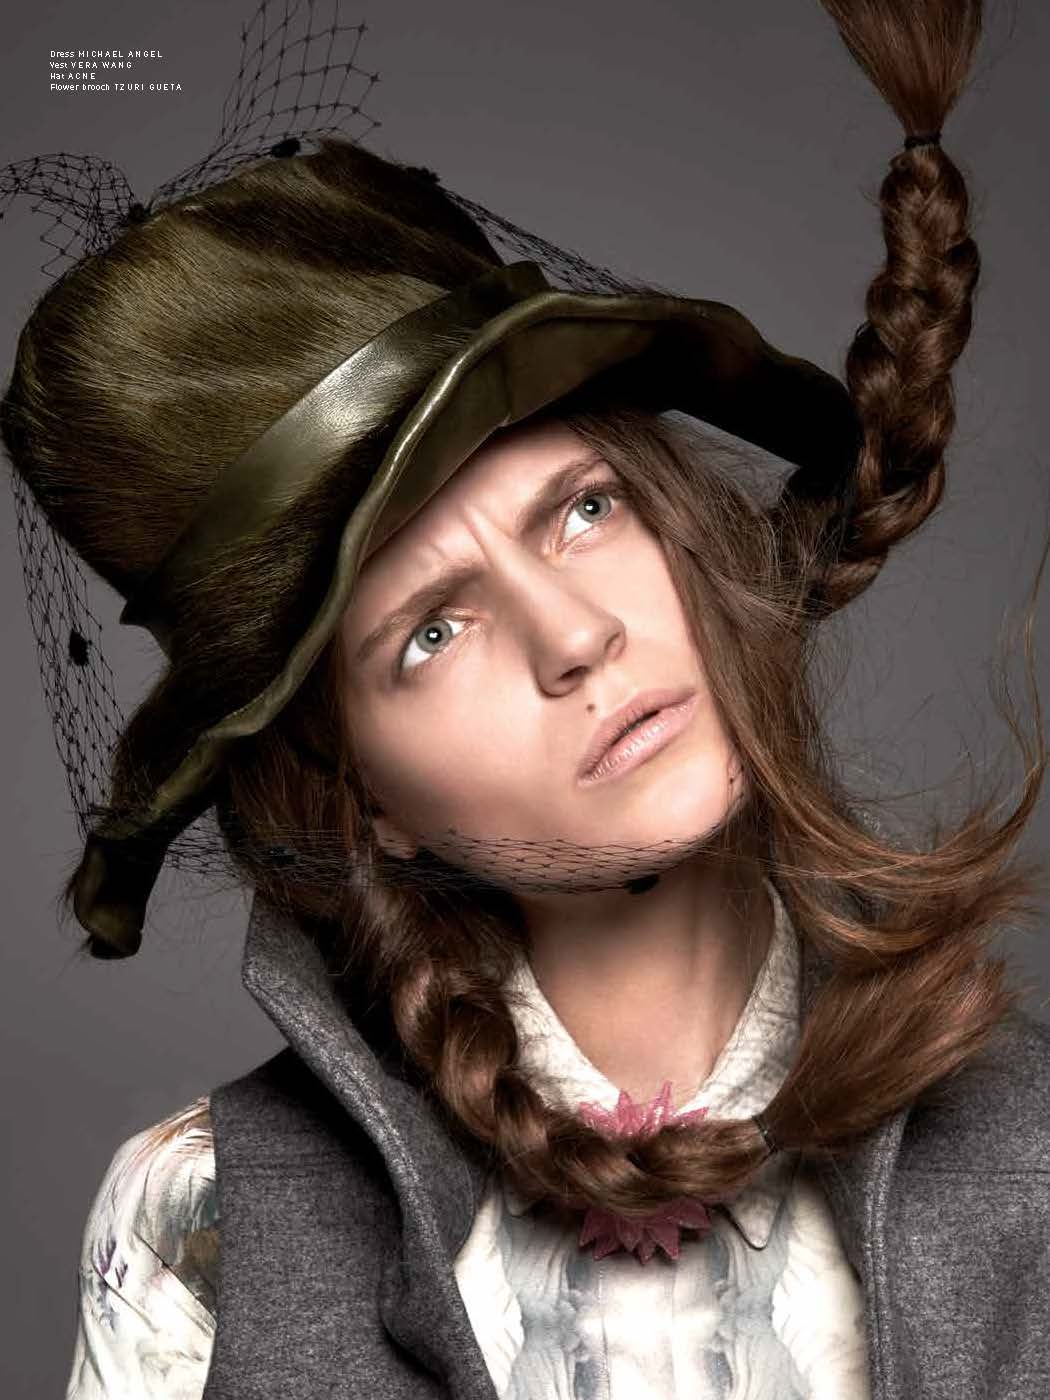 PulpMagda6 Magdalena Langrova Looks Mad as a Hatter for Pulp Magazine No. 6 by Ishi